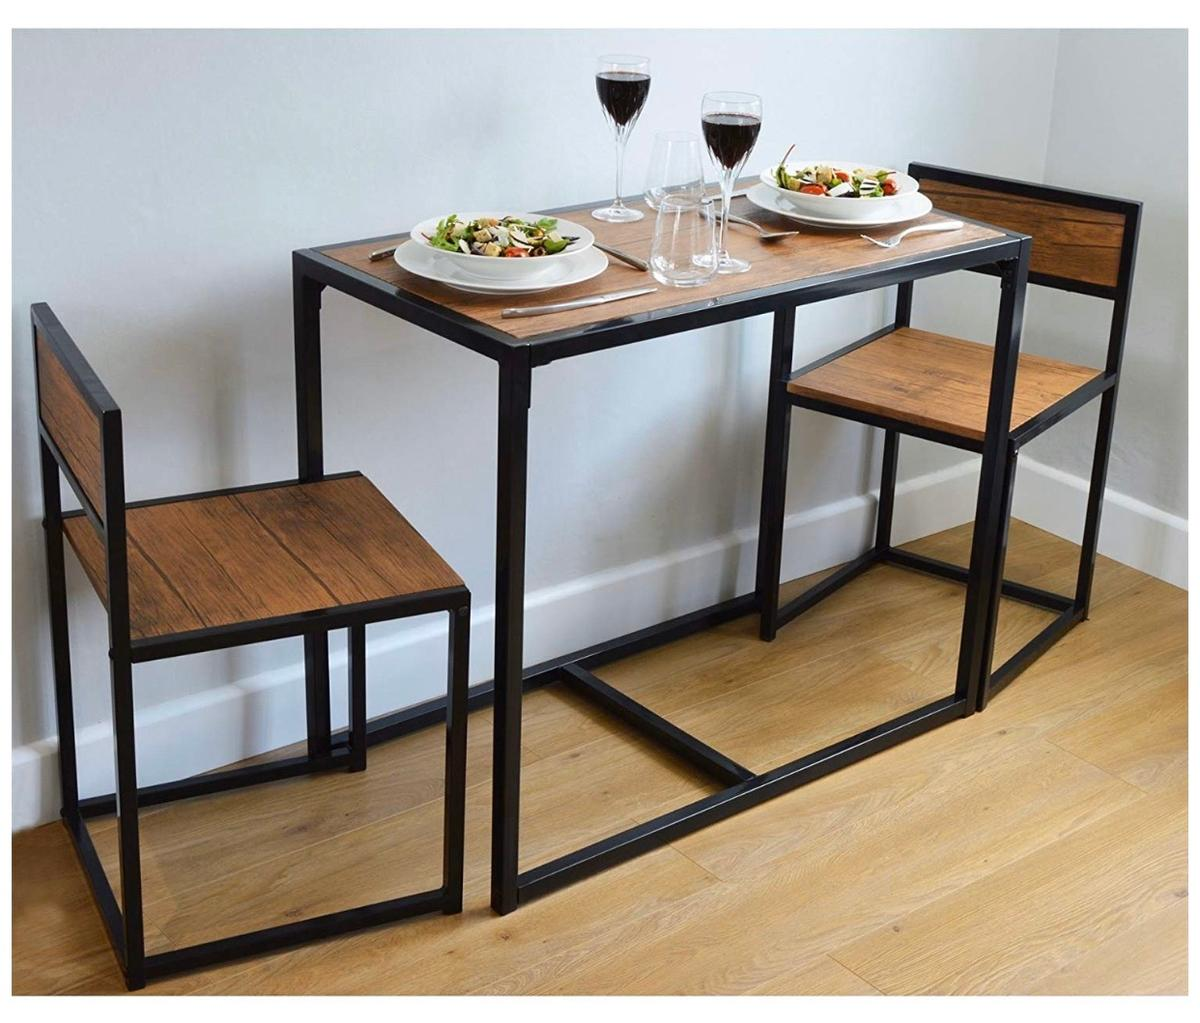 9 seater compact dining/ kitchen table in ST9 Stafford für £ 9 ...